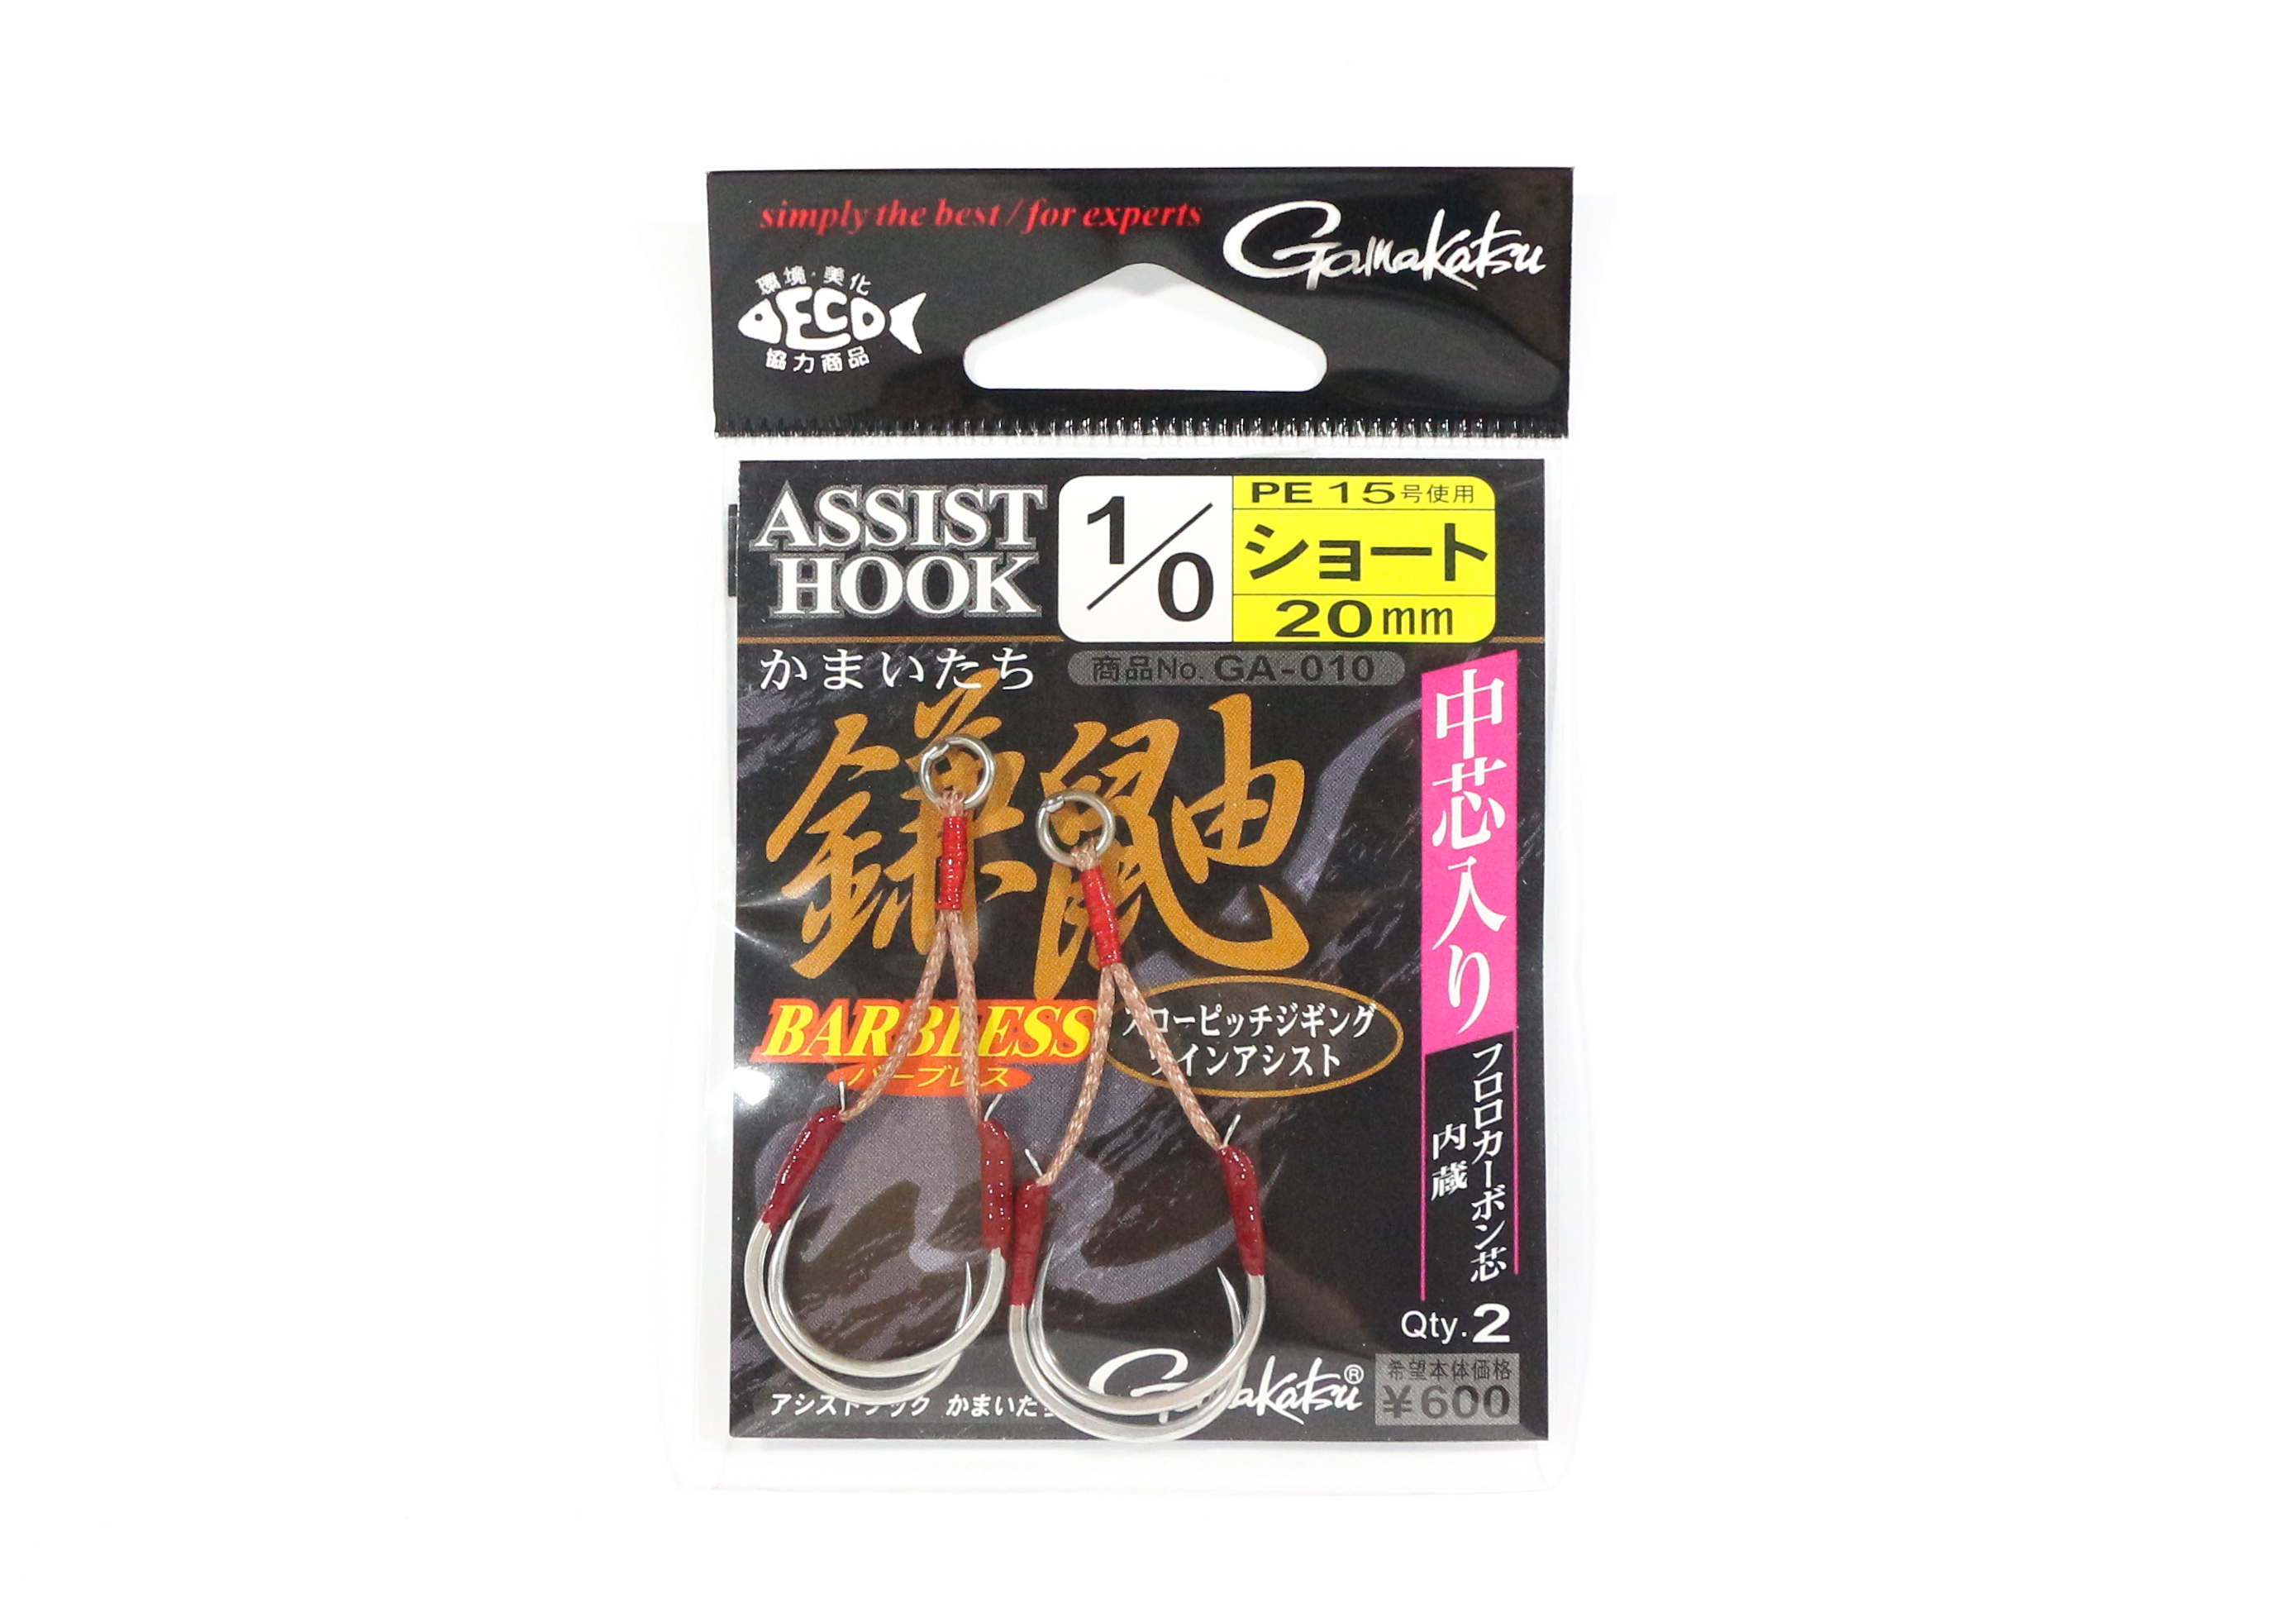 Gamakatsu GA-010 Assist Hook Barbless Double Short Size 1/0 ,2 Per pack (9983)